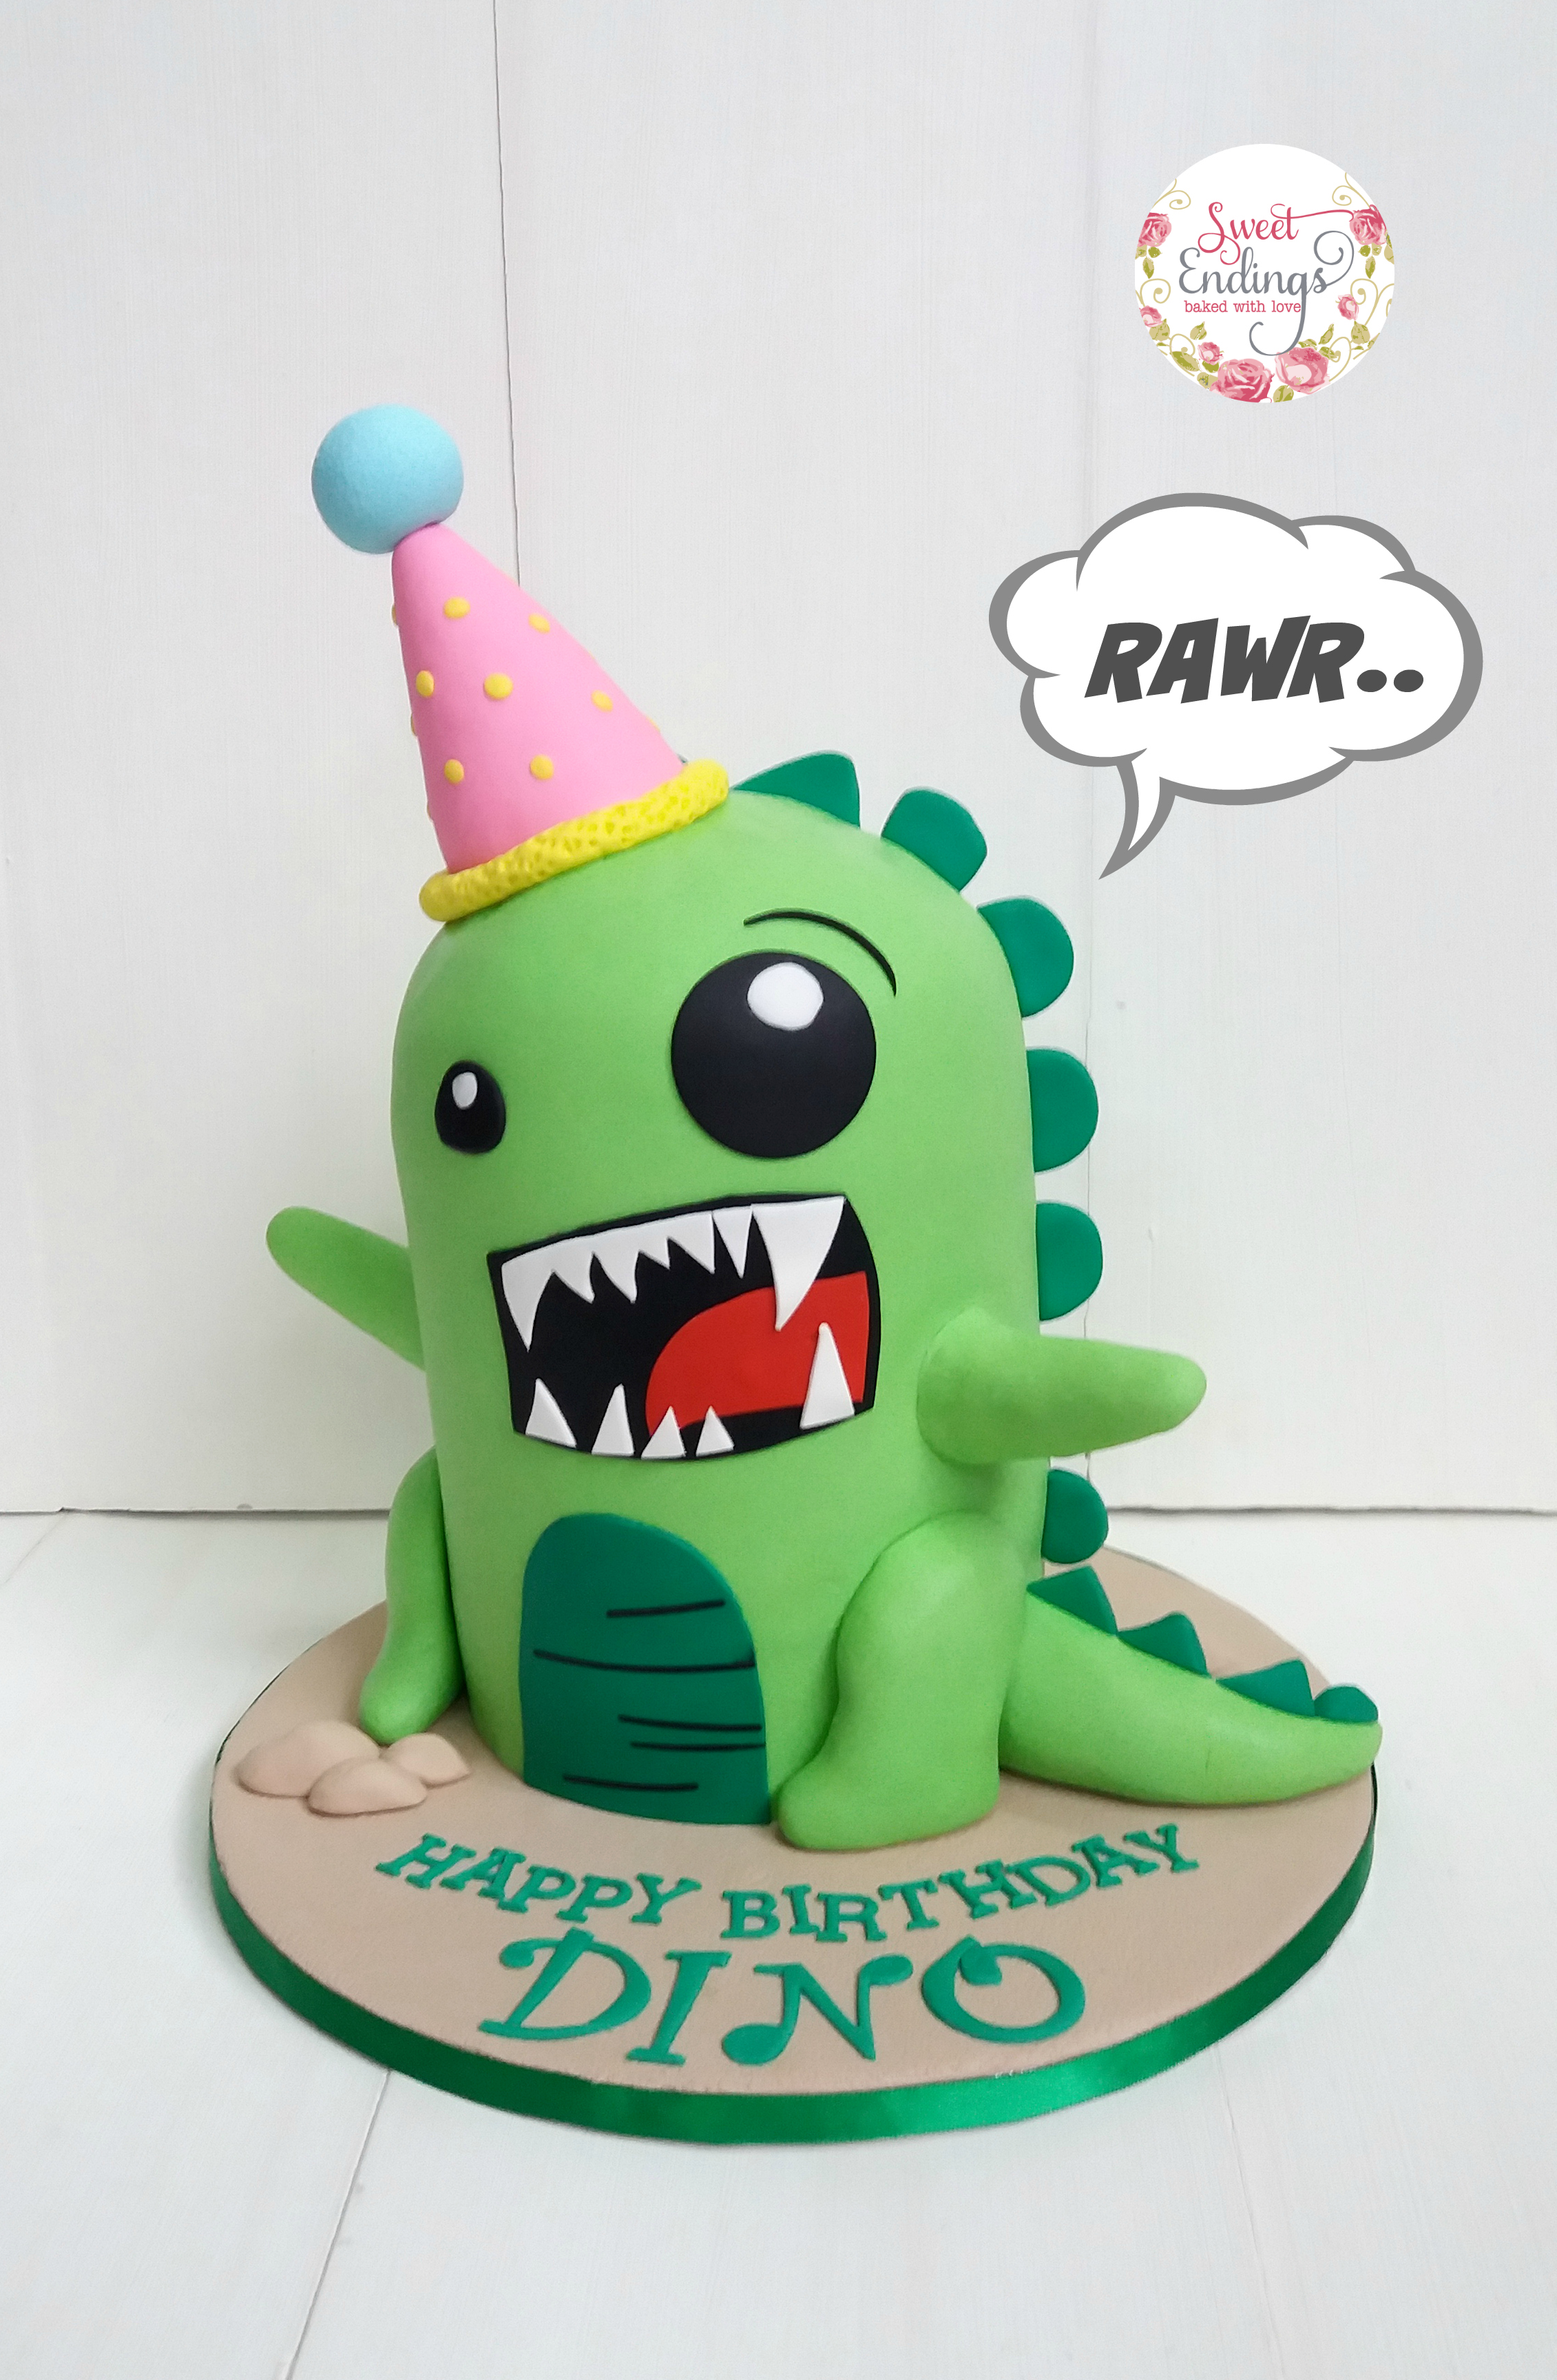 Green birthday dinosaur cake